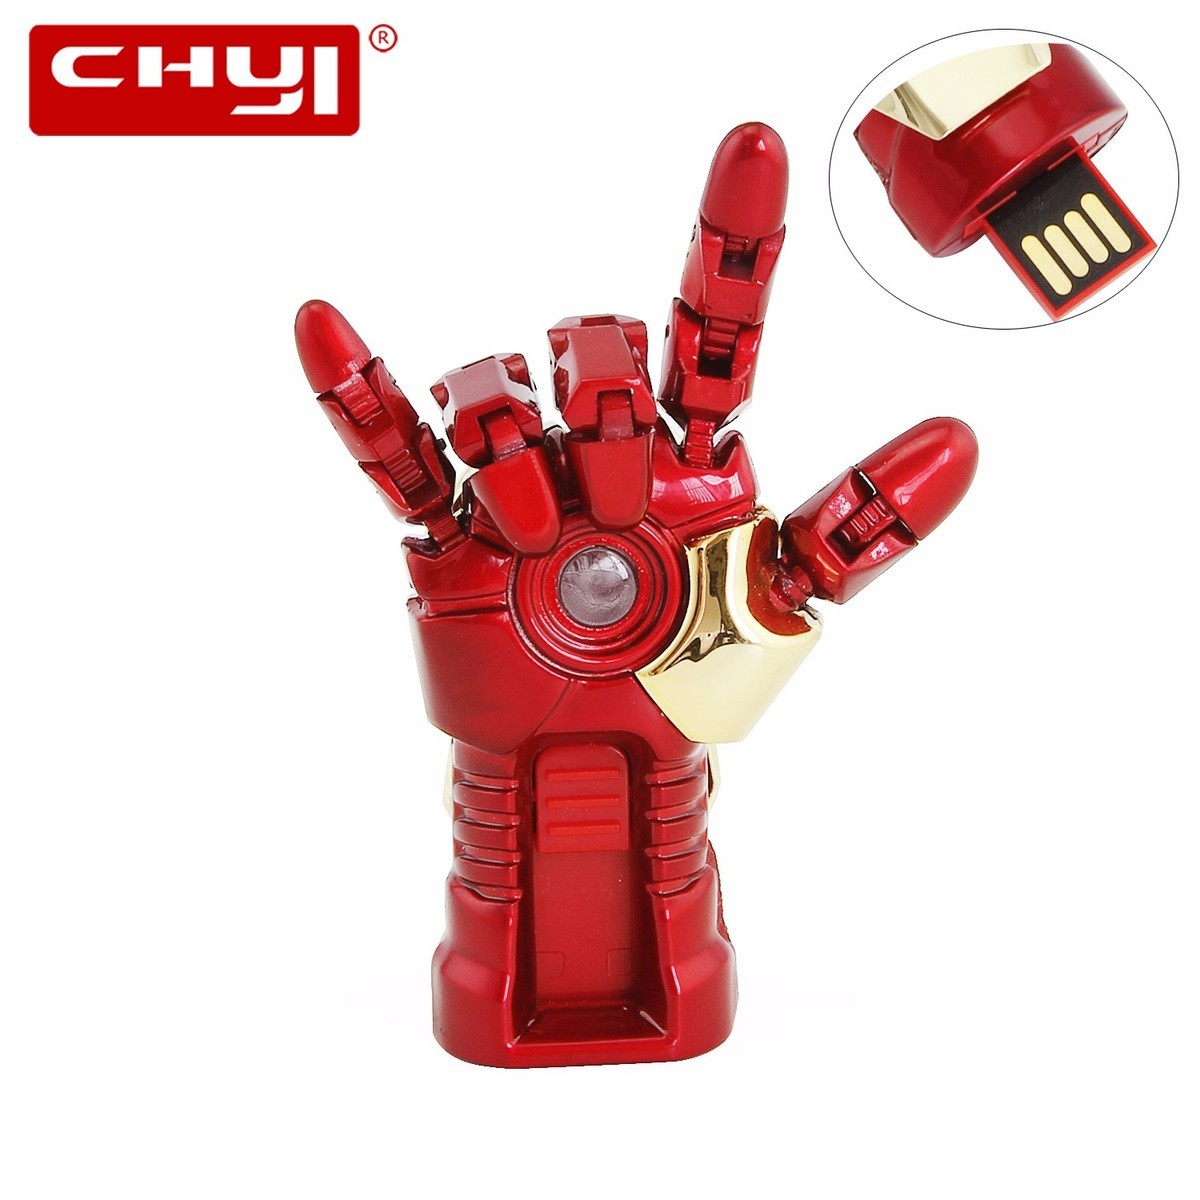 CHYI Cool Right Hand Design Pendrive USB Flash Drive 32GB Metal Avenger Memory USB Stick ...